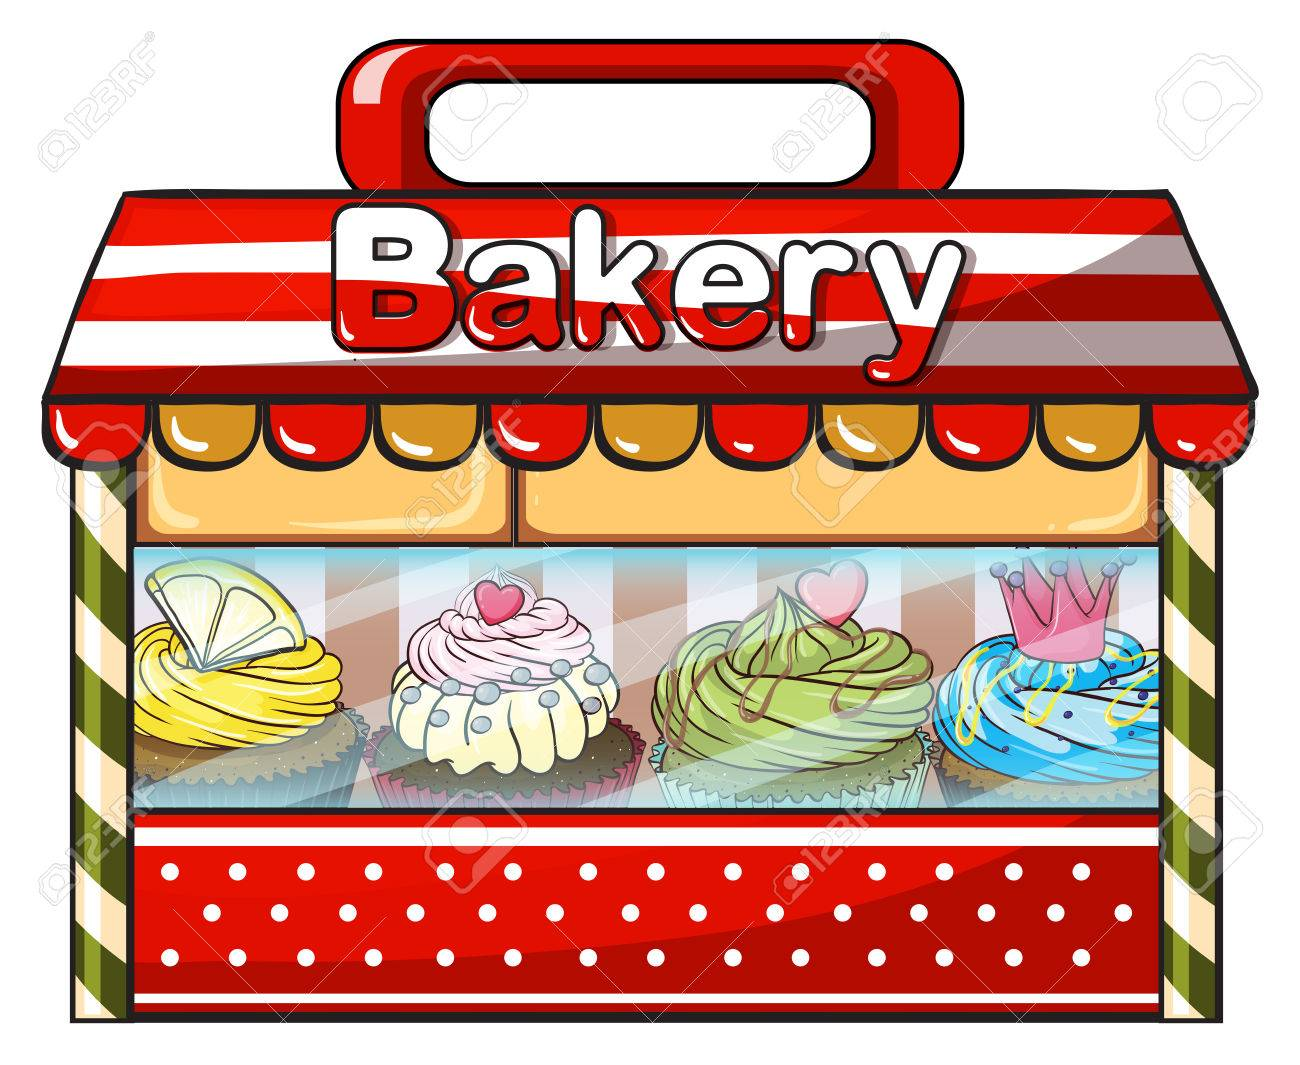 Illustration of a bakery shop on a white background.